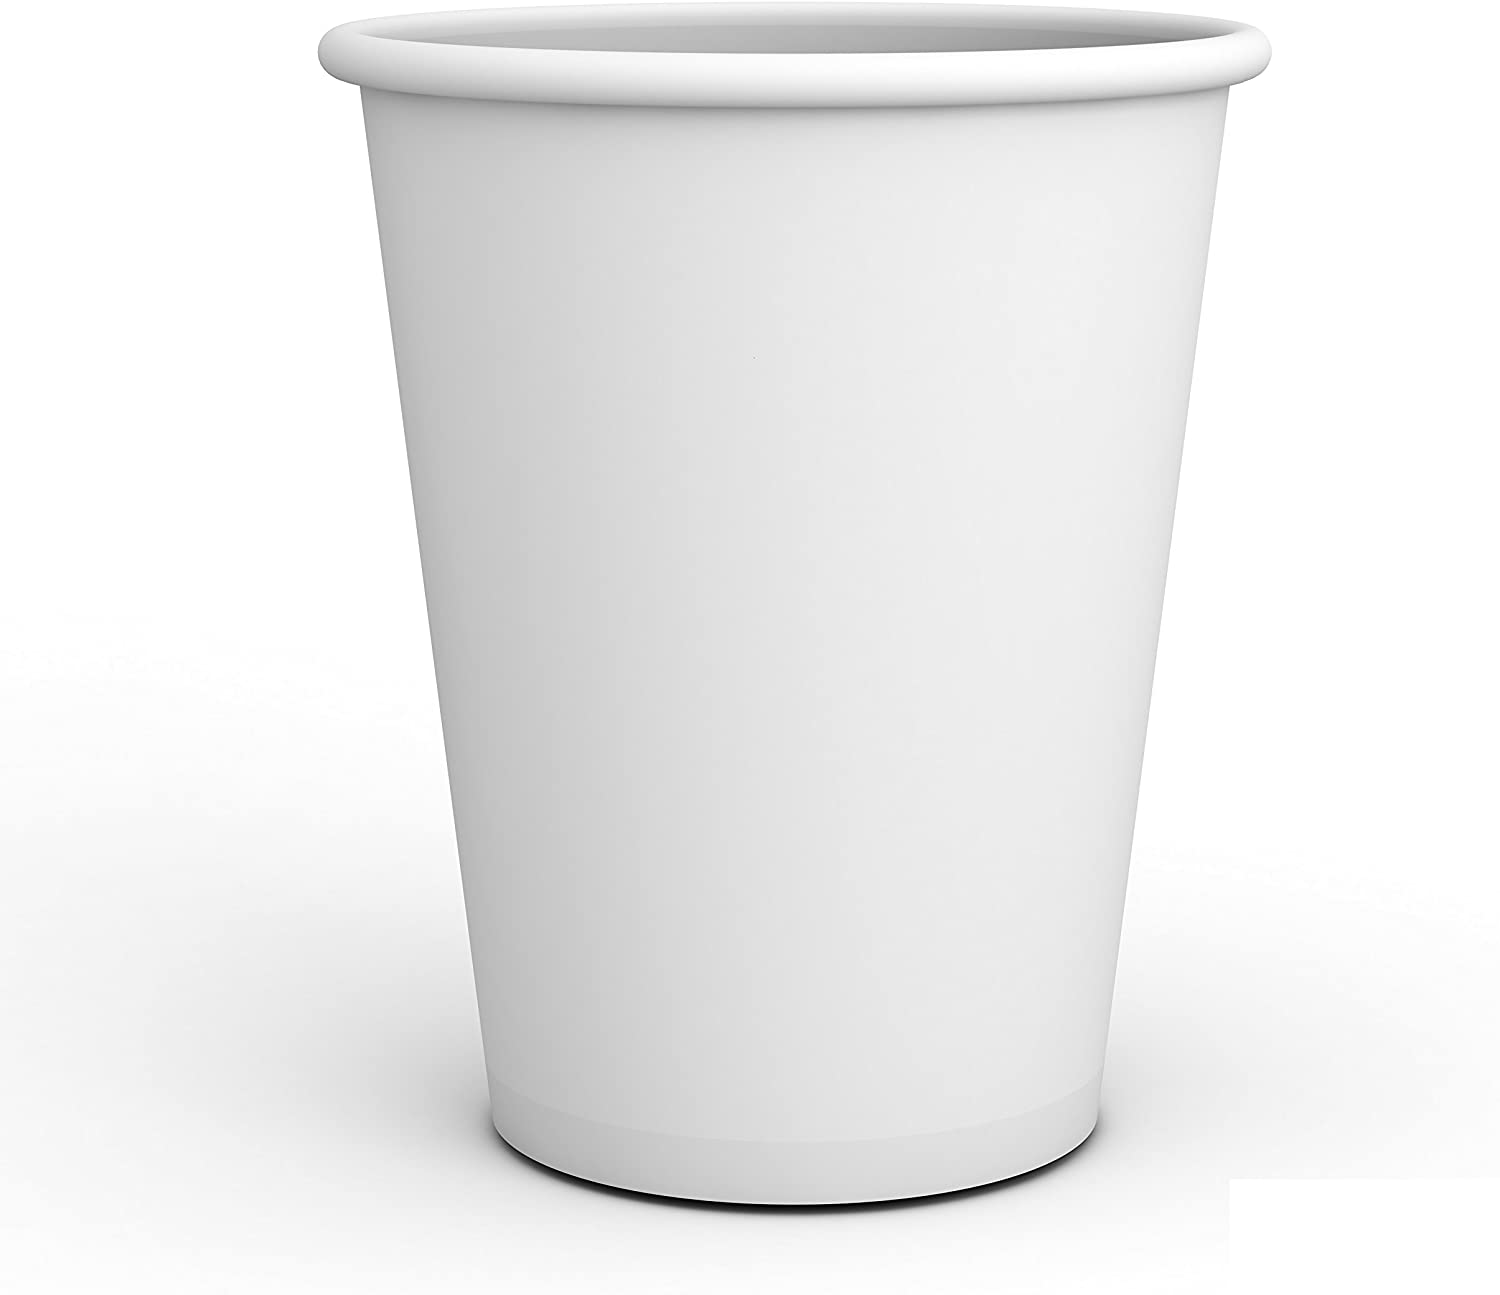 2 Pack of 500 ct - White Hot Drink Paper Cups 10 oz by EcoQuality - Disposable Coffee Cups, Recyclable, Compostable, Great for Office, Breakrooms, Restaurants, Coffee Shops, Tea Shops, Latte, Chai